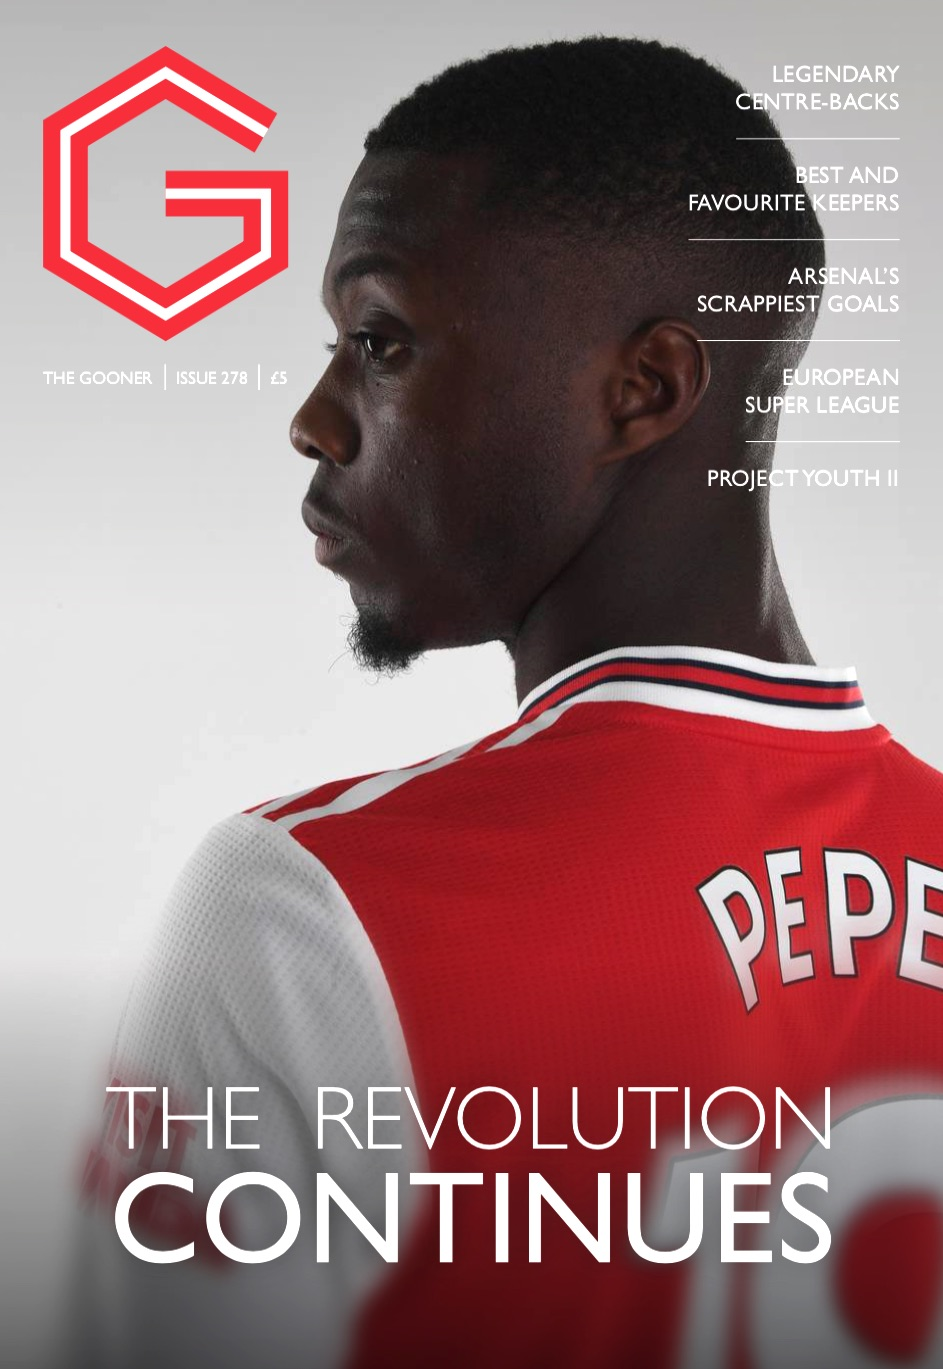 Current Edition – The Gooner Issue 278 (UK)